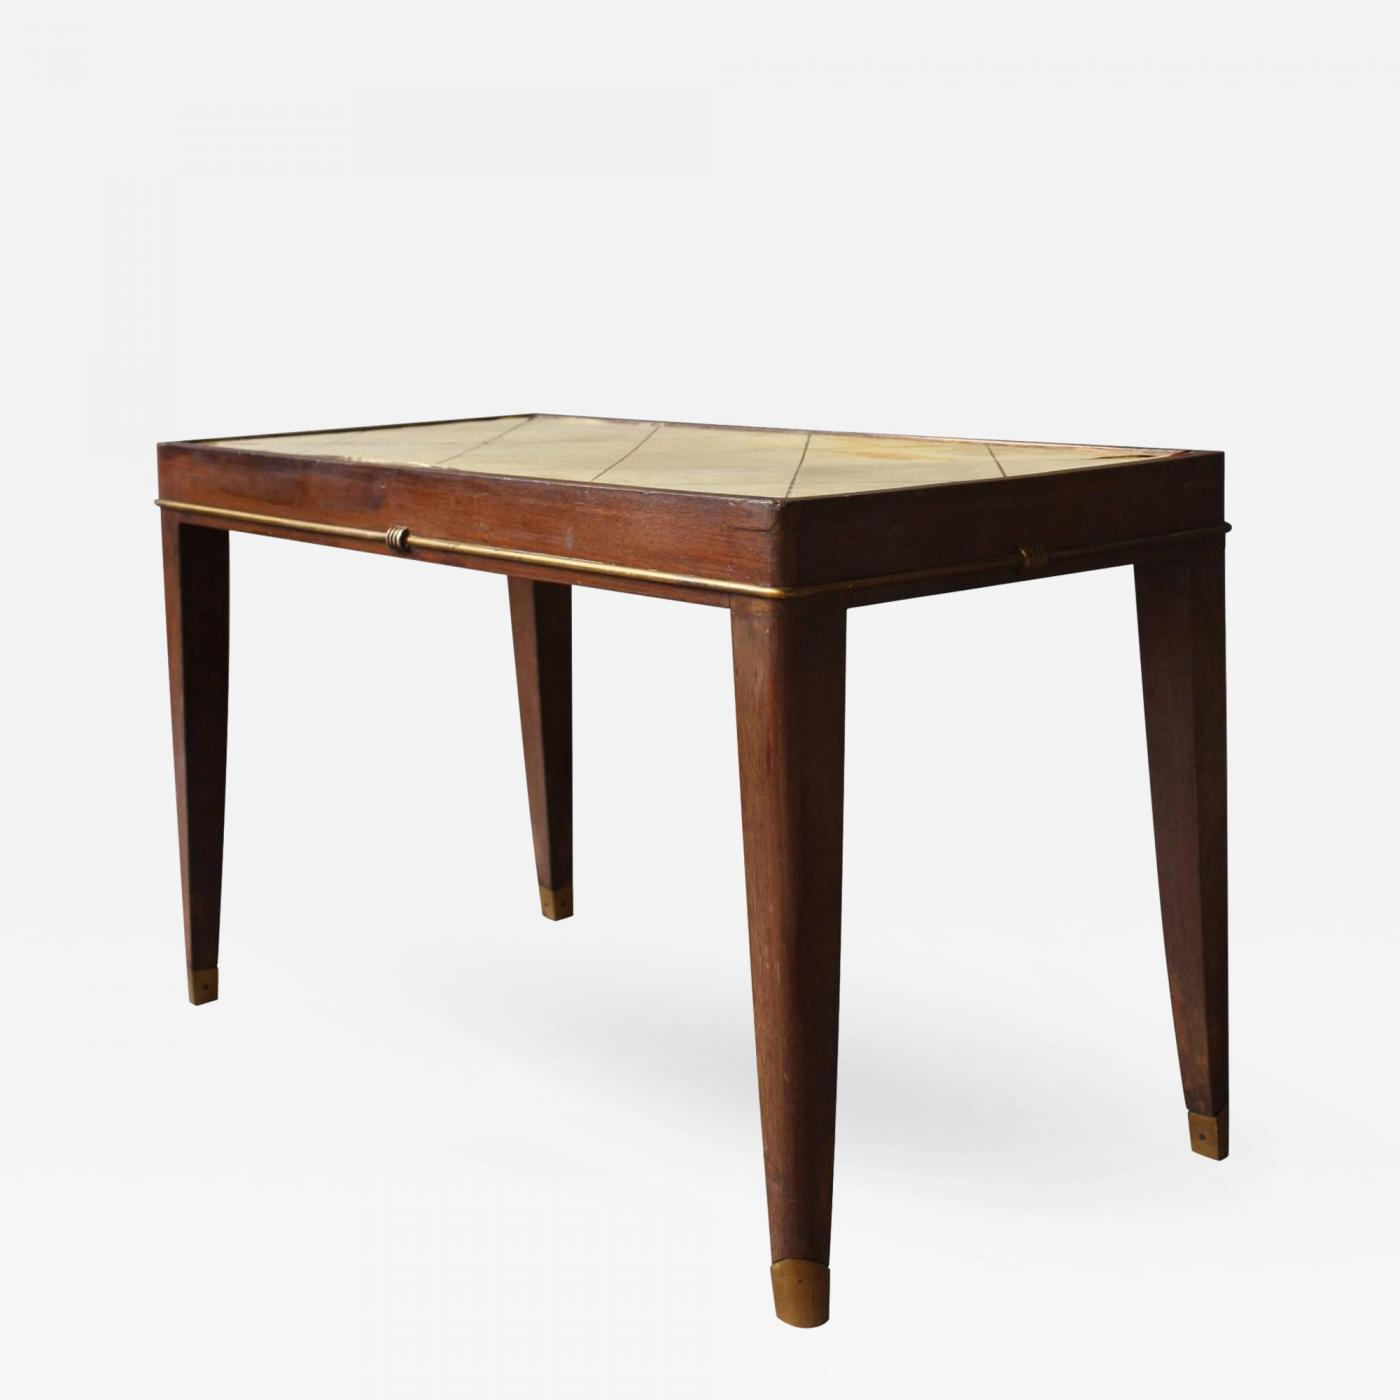 A French Art Deco Rosewood Coffee Table With A Parchment